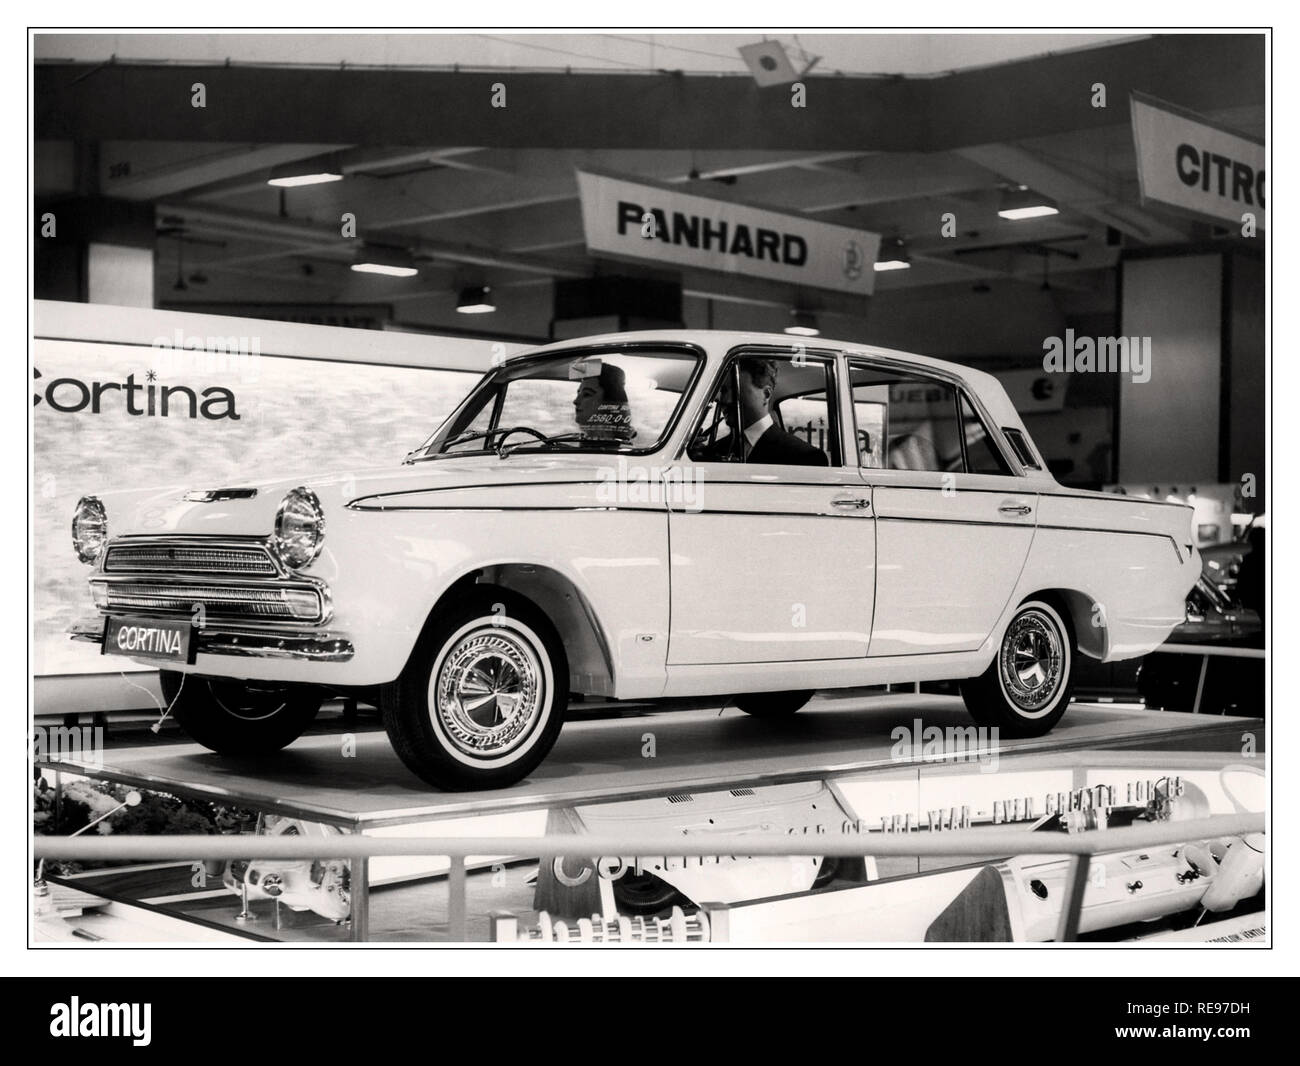 Ford Cortina motorcar at the 1964 Earls Court Motor Show The Ford Cortina Mk 1 was first on sale in 1962 and was voted car of the year in 1964. Stock Photo